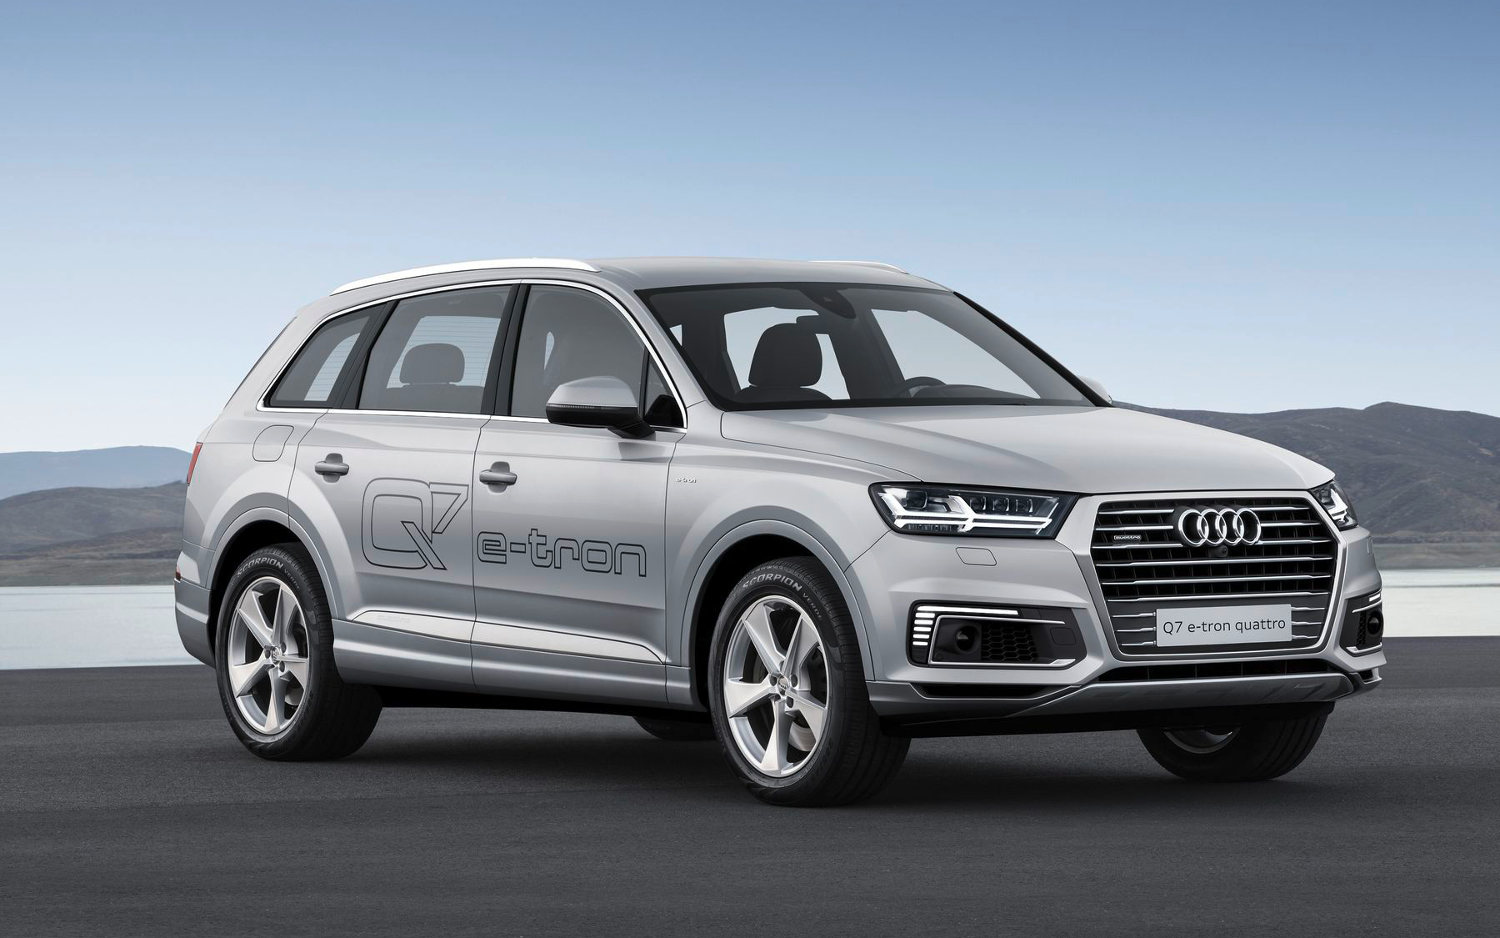 Audi etron SUV Can Recharge in as Little as 30 Minutes